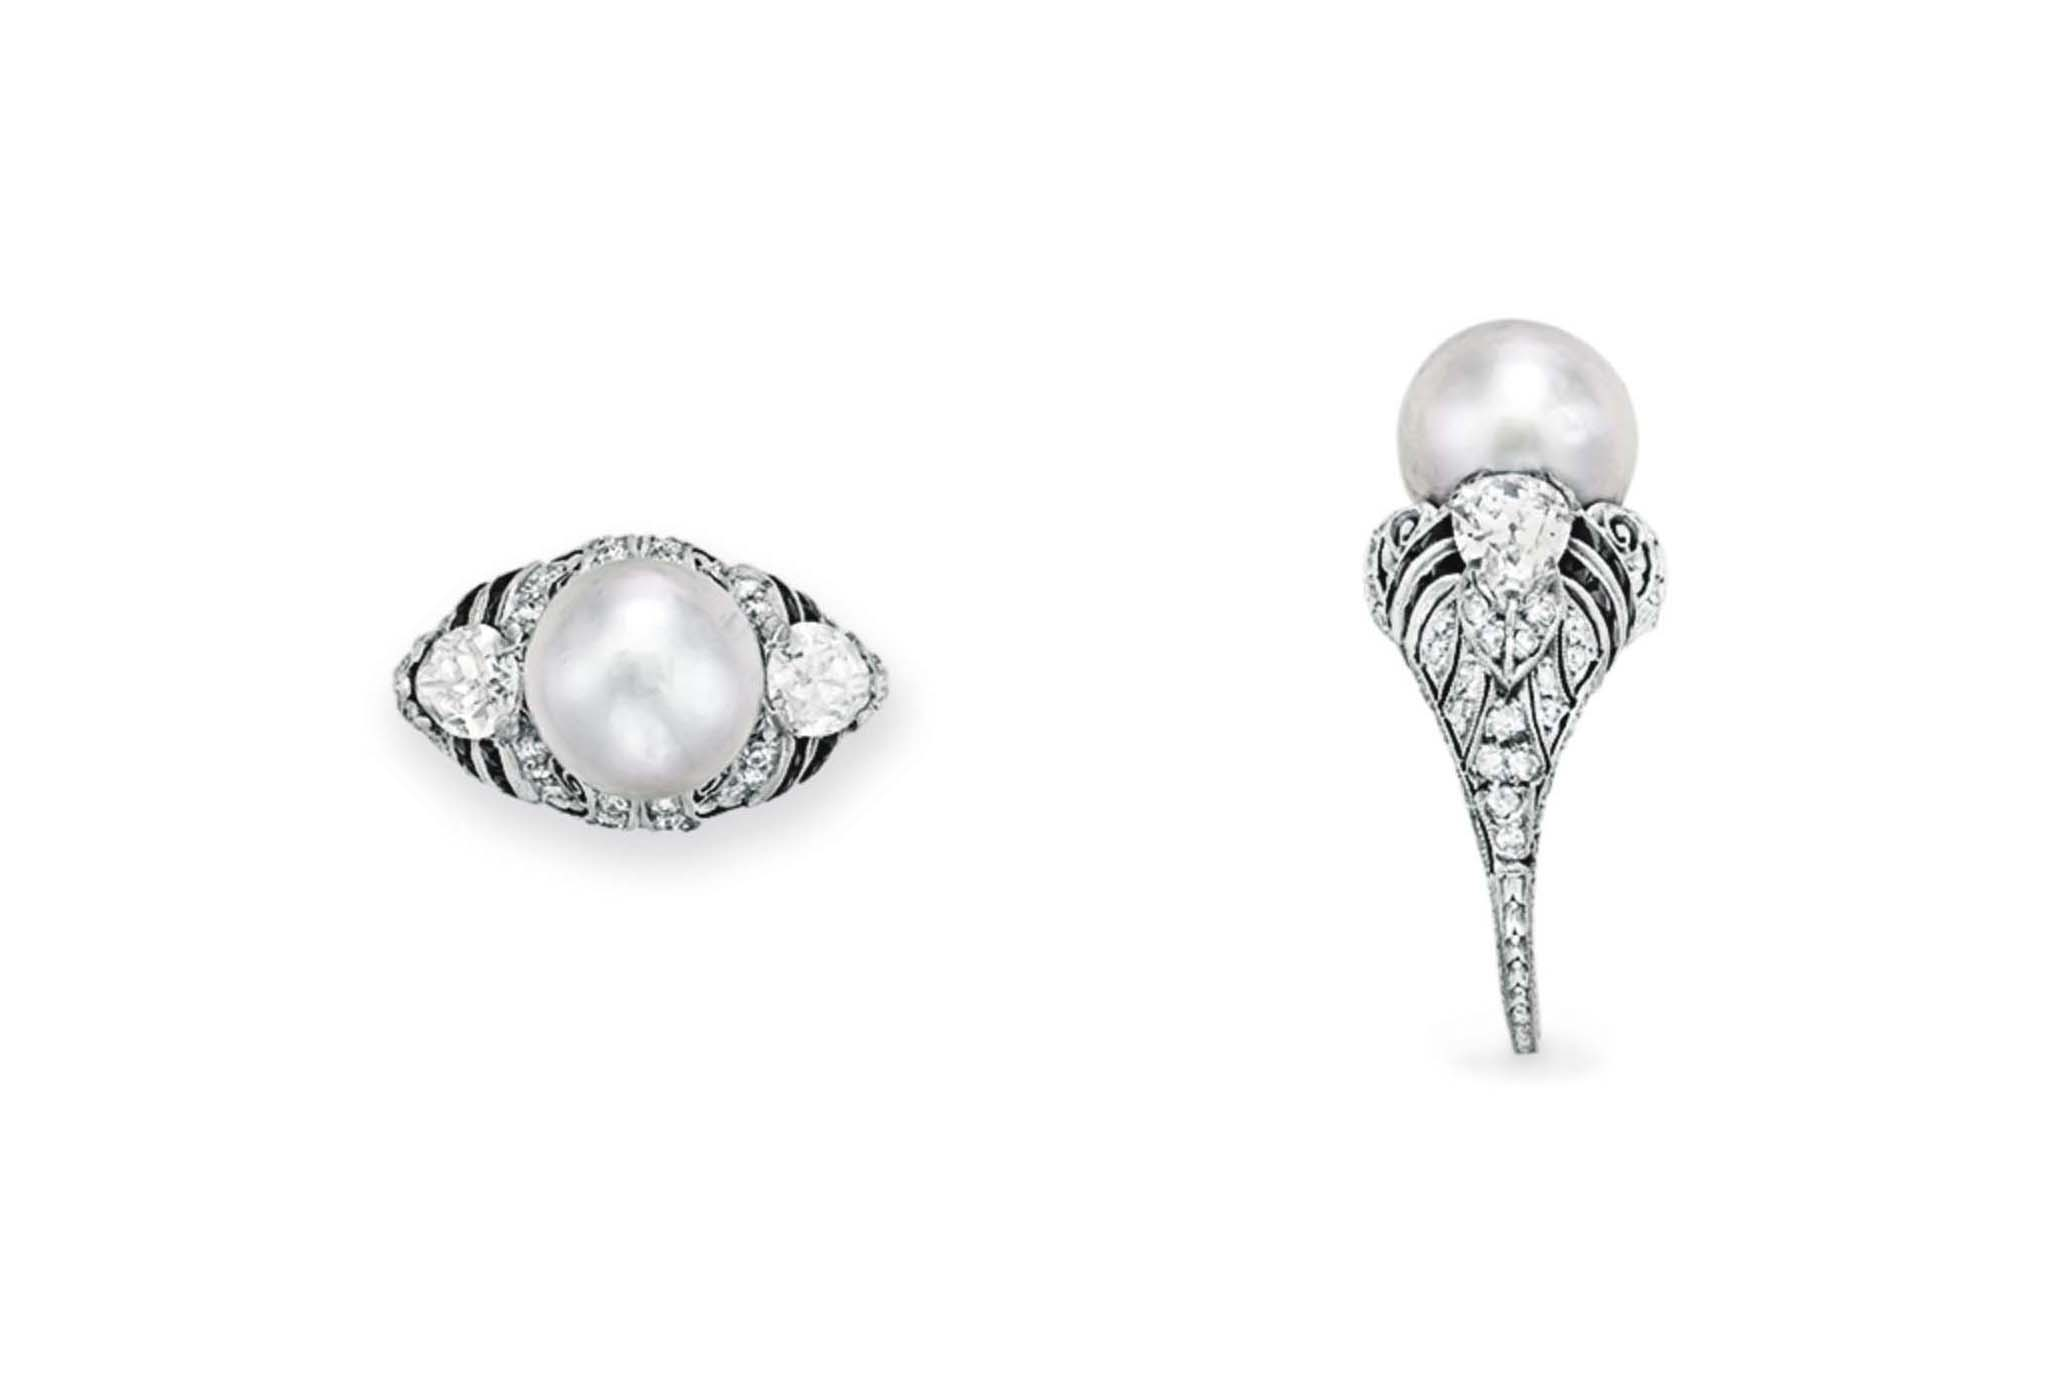 AN ART DECO NATURAL GRAY PEARL, DIAMOND AND ONYX RING